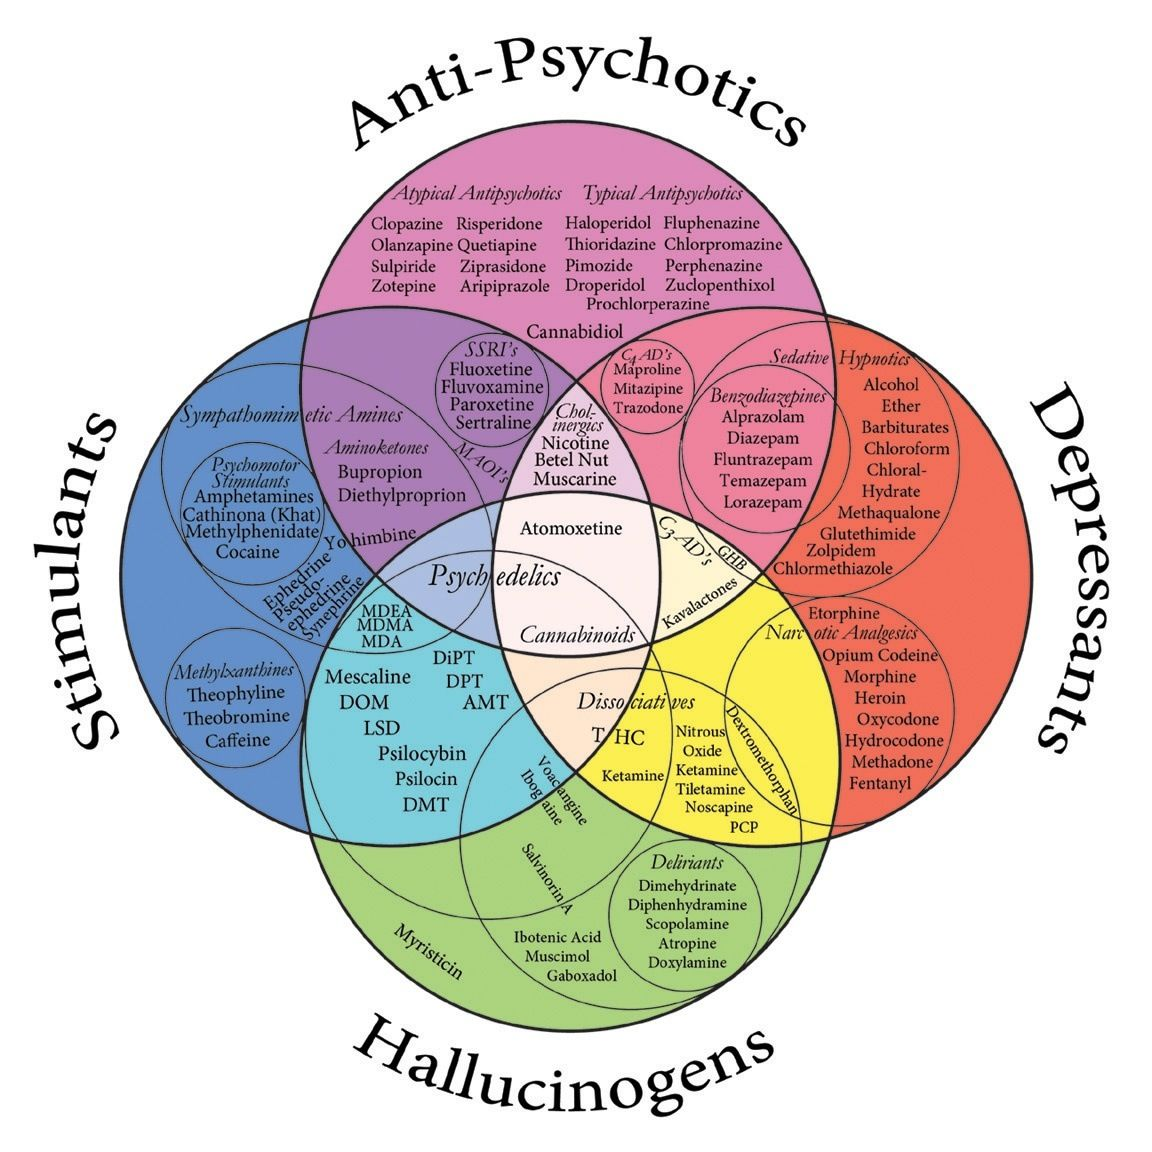 Medical interpreting medications diagram a visual representation psychoactive drugs are chemical substances that affect the brain these medications can affect out central nervous system and change the way we feel ccuart